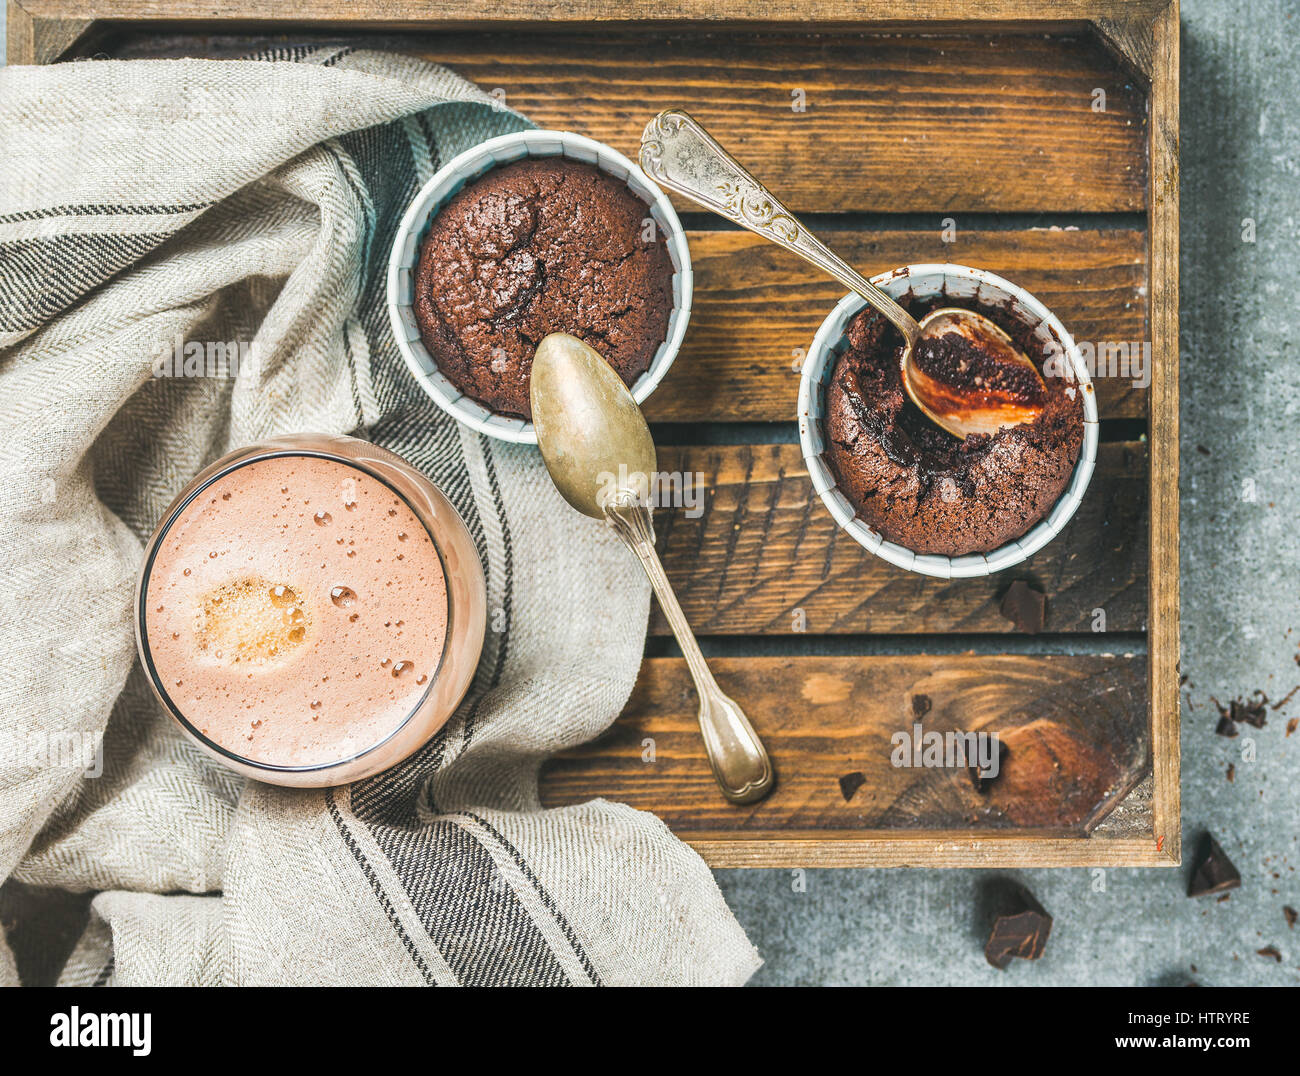 Chocolate souffle in individual baking cups and mocha coffee - Stock Image